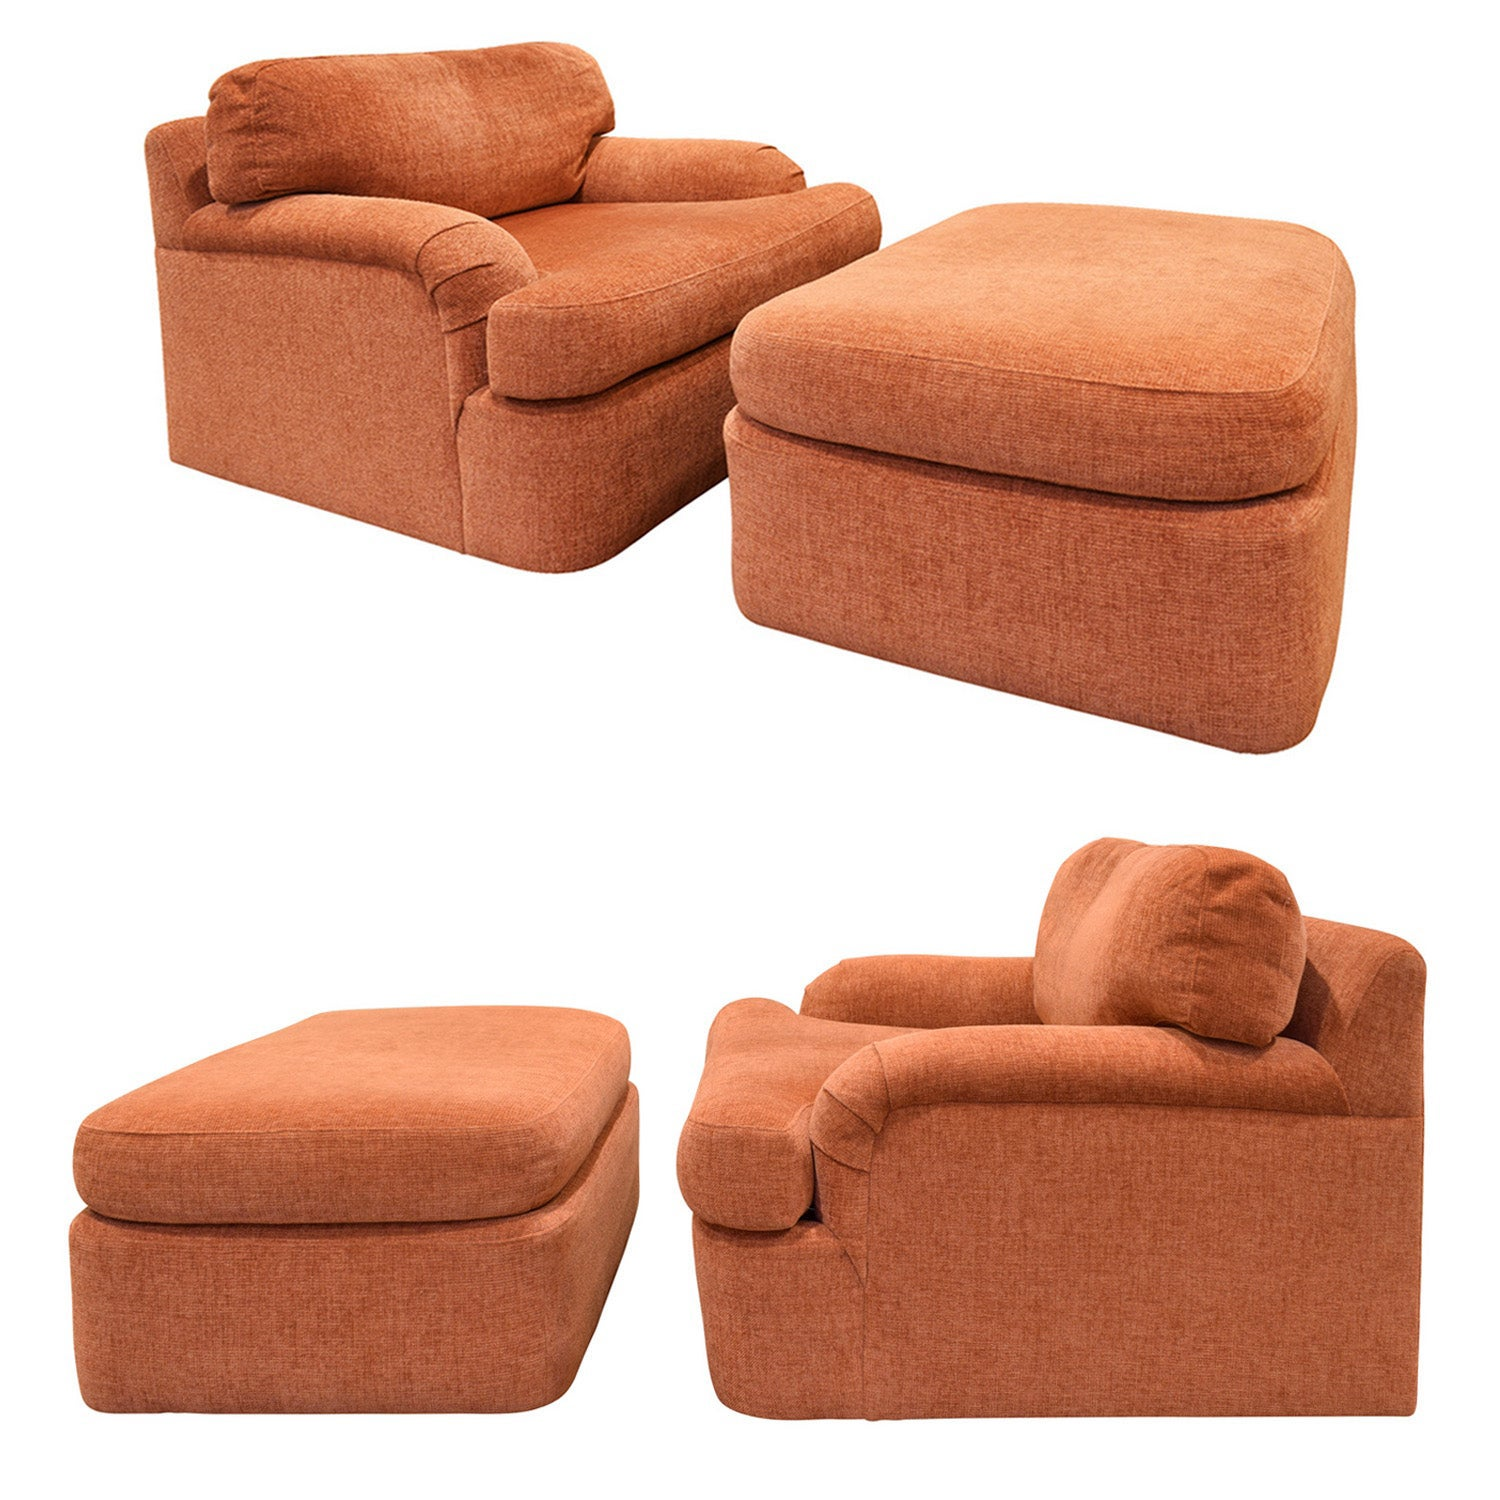 Pair of Large Swiveling Lounge Chairs with Matching Ottomans, 1970s